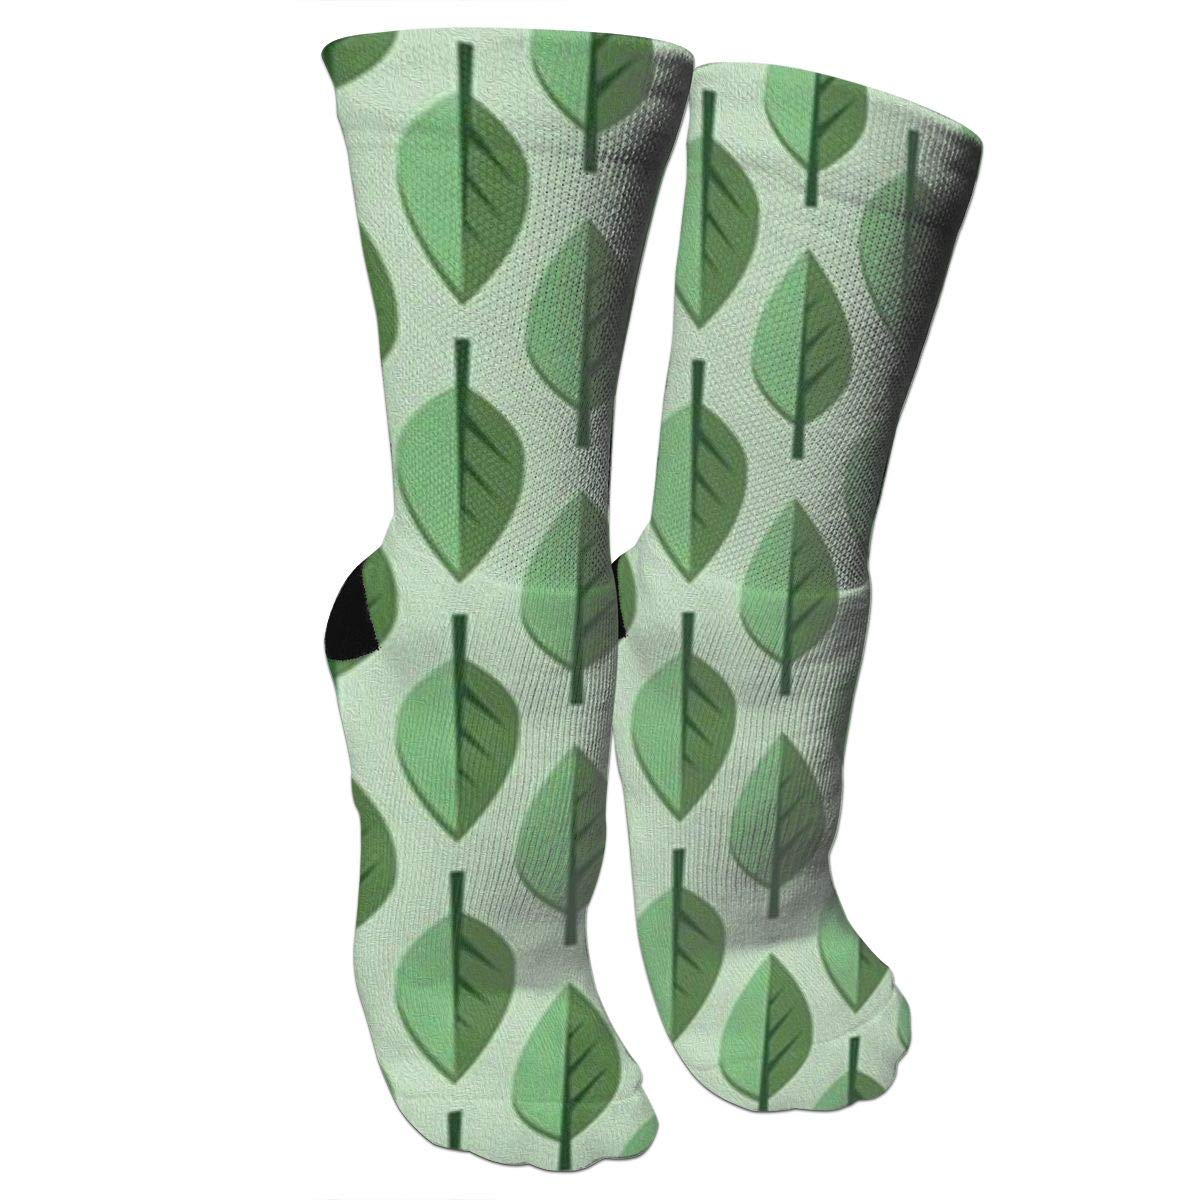 Green LeavesCrazy Socks Casual Cotton Crew Socks Cute Funny Sock Great For Sports And Hiking